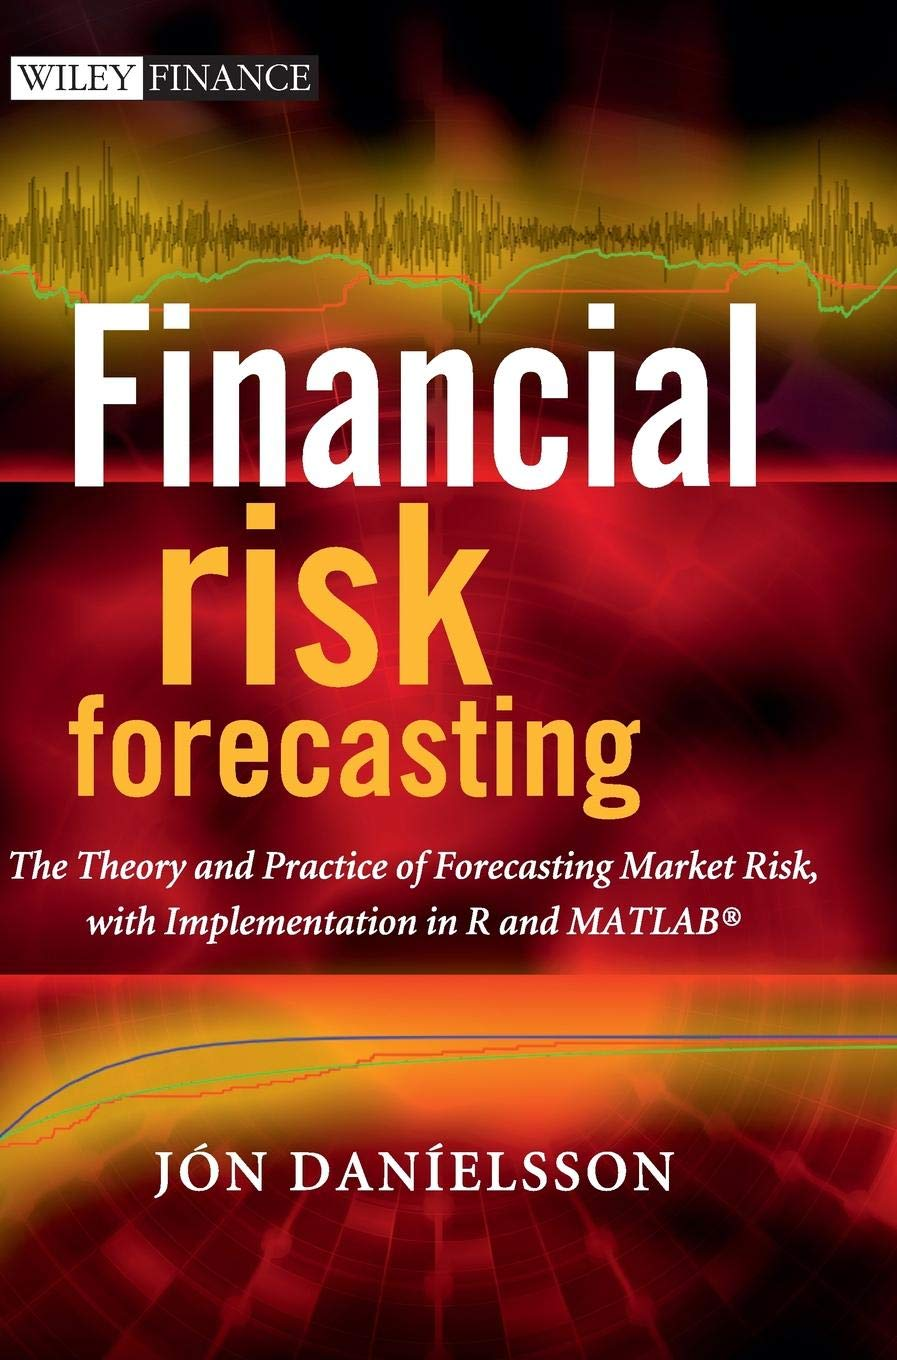 Financial Risk Forecasting: The Theory and Practice of Forecasting